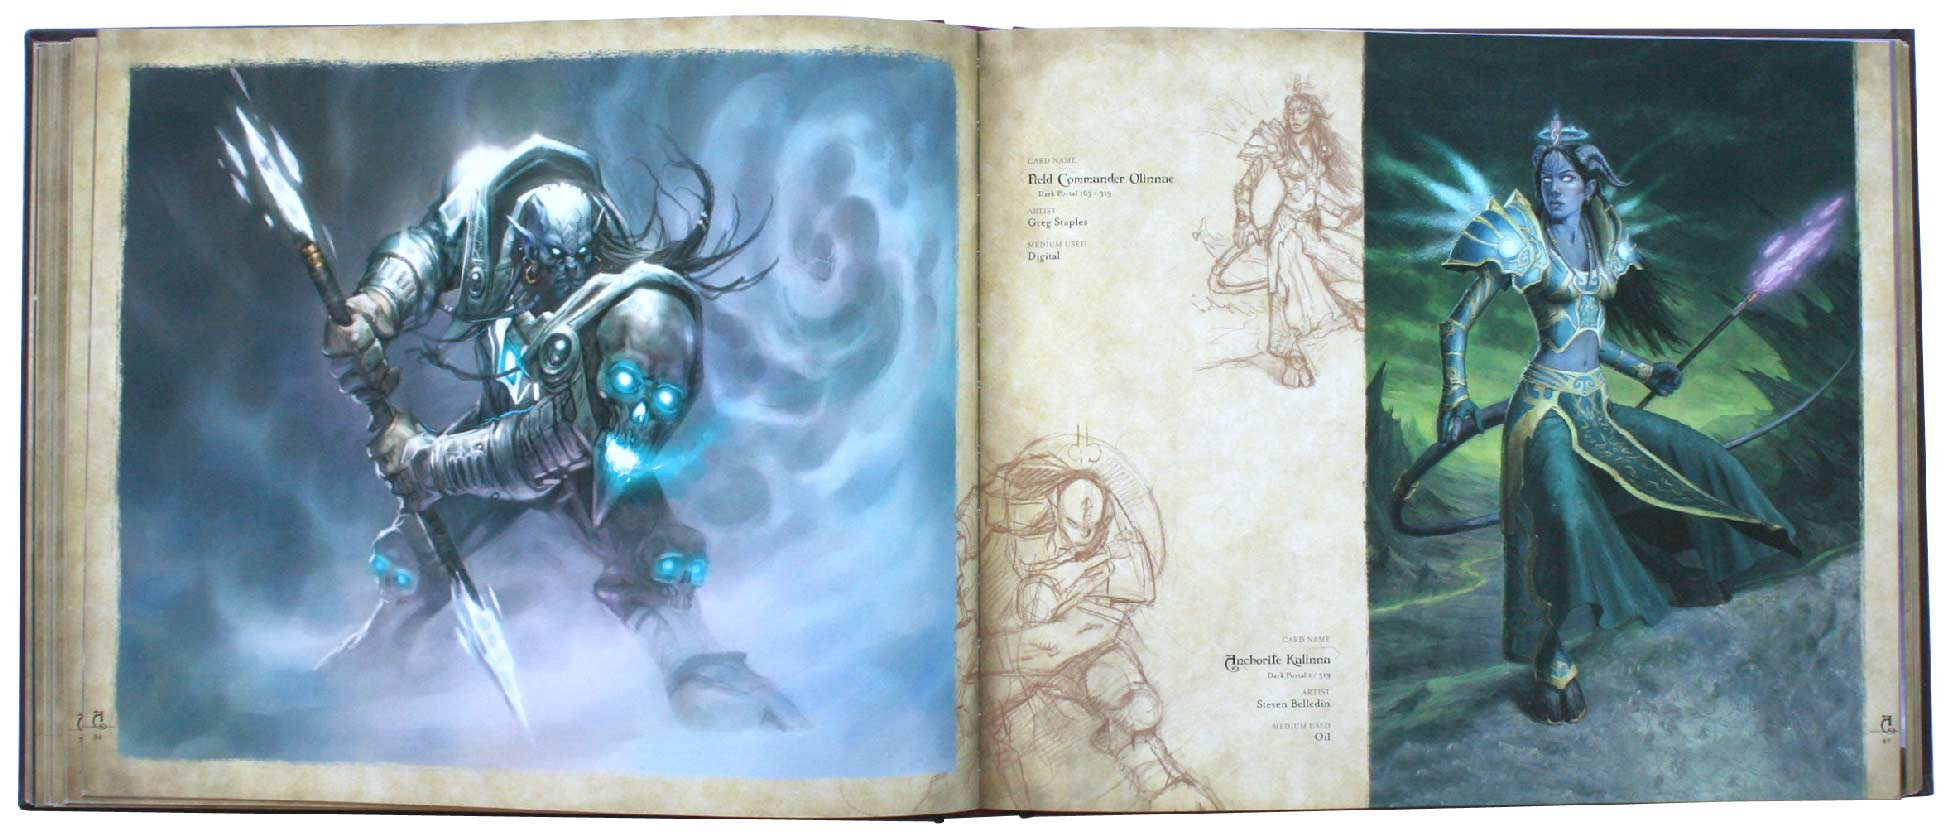 page 86 et 87 de l'art book : The Art of the Trading Card Game (World of Wacraft)